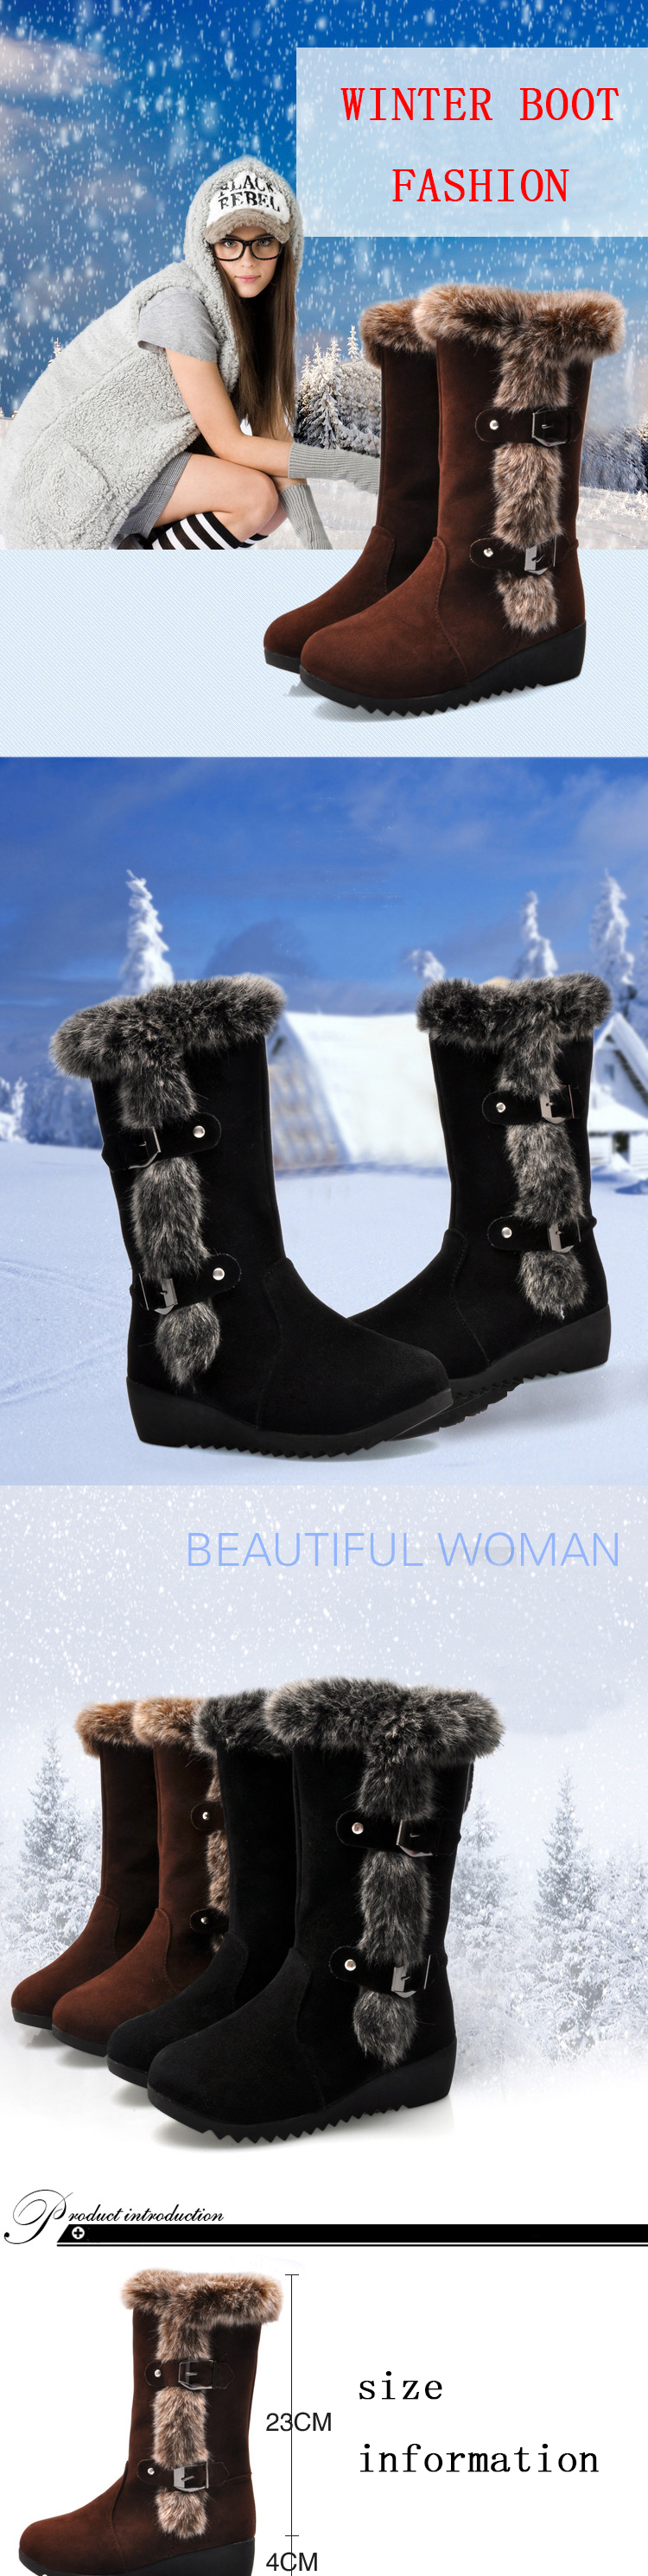 Women Winter Boots Flock Winter Shoes Ladies Fashion Snow Boots Shoes Thigh High Suede Mid-Calf Boots 17